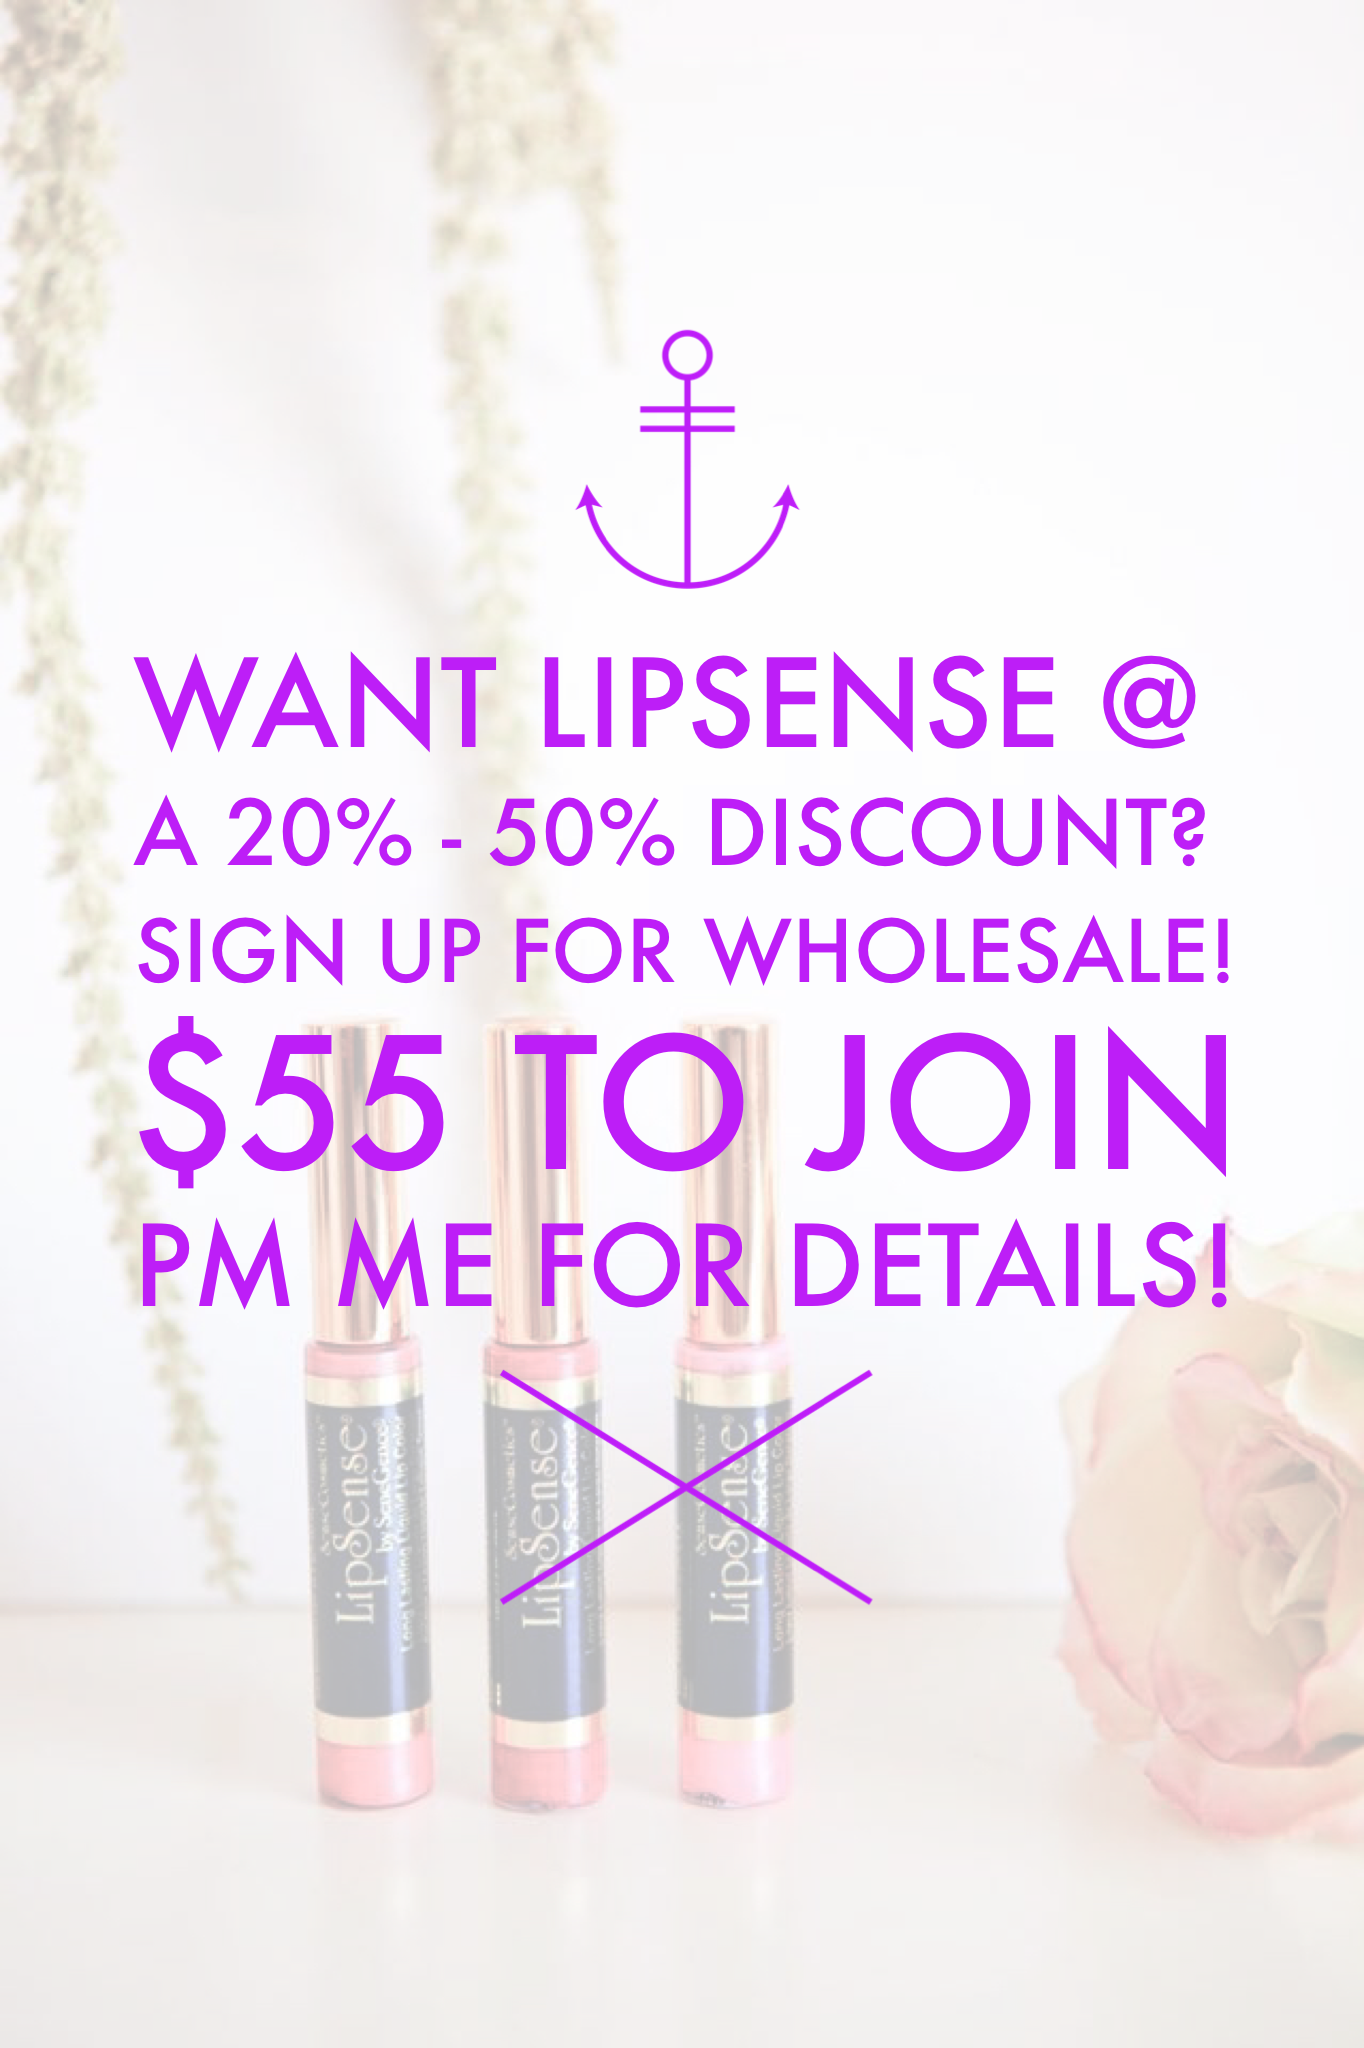 Get a Wholesale Discount to buy all the LipSense and